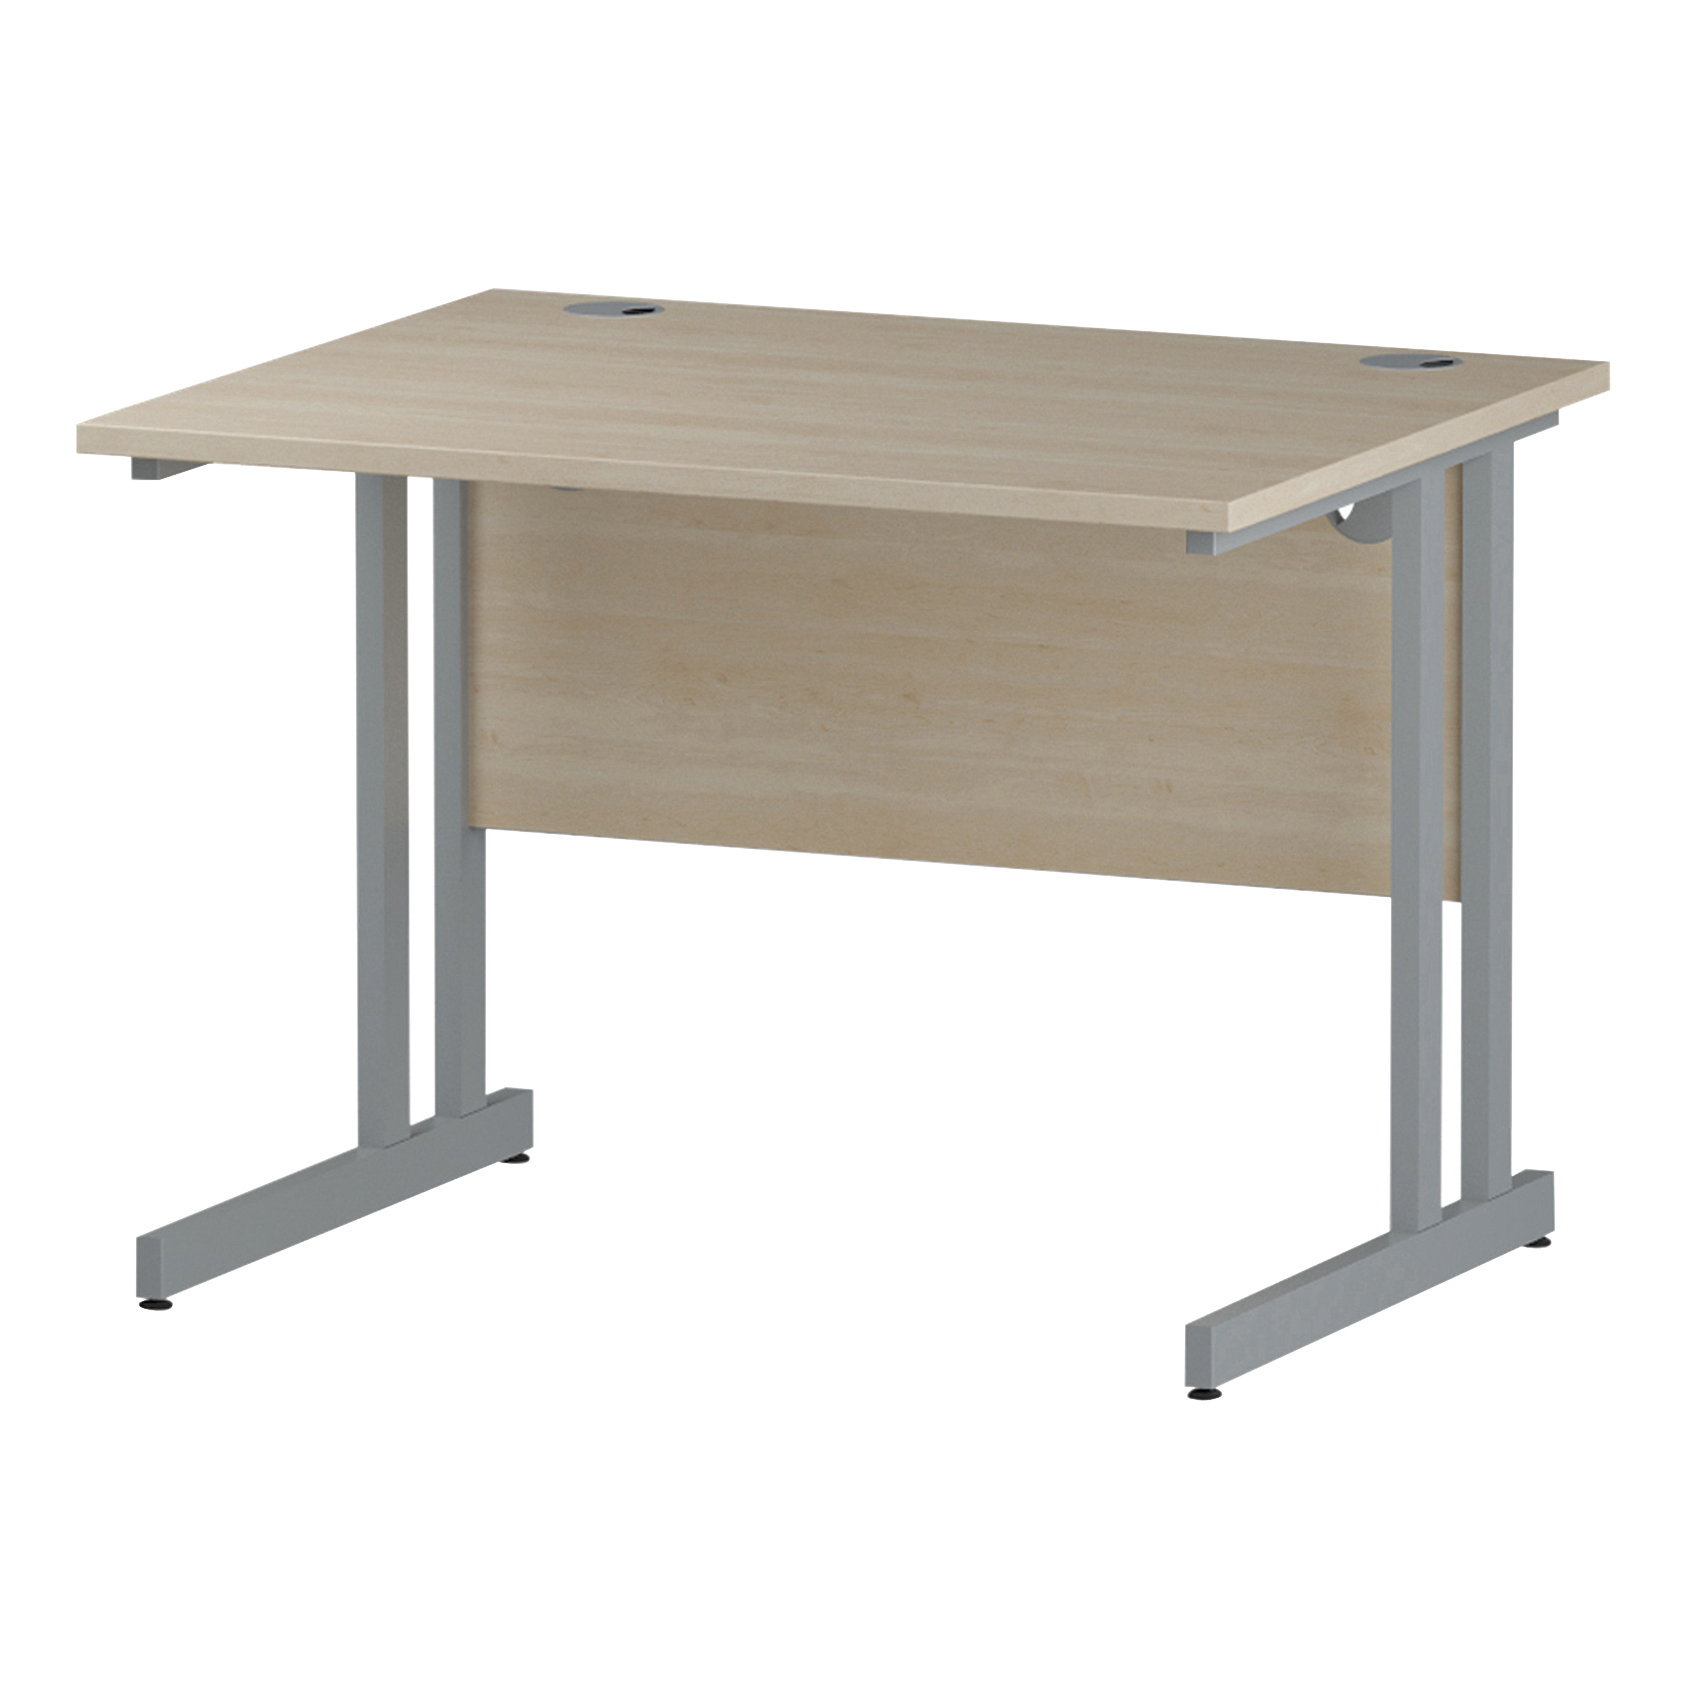 Trexus Rectangular Desk Silver Cantilever Leg 1000x800mm Maple Ref I000348